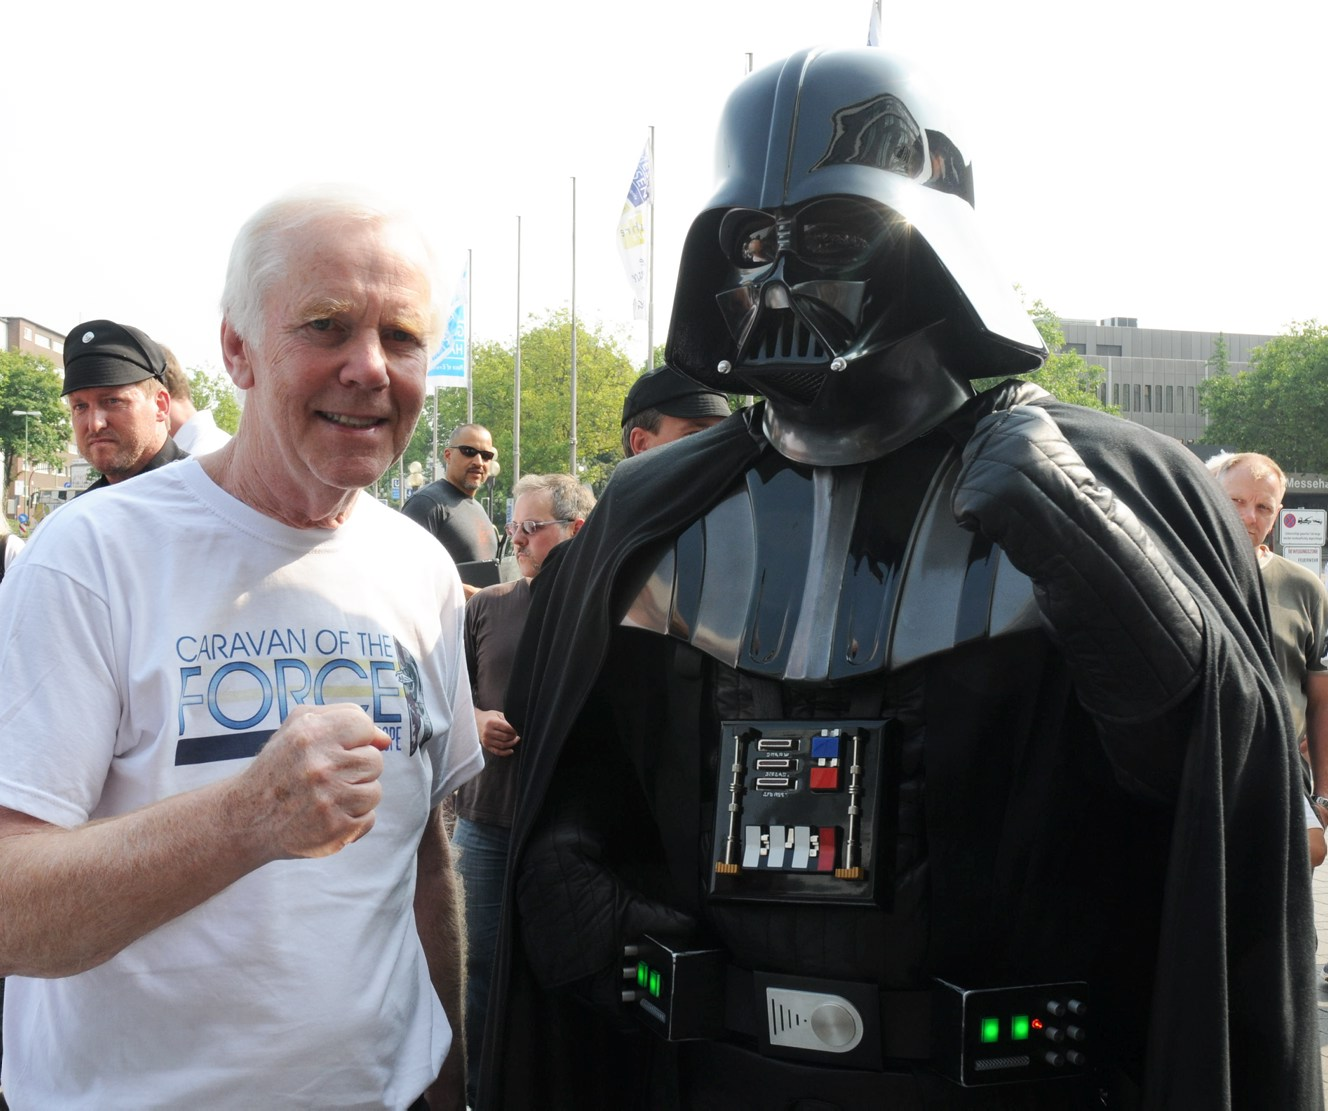 Star Wars fans pose with the British actor Jeremy Bulloch (L) alias 'Boba Fett' during the Star-Wars fan meeting in Essen, Germany, 24 July 2013. Photo: Stephan Witte | usage worldwide   (Photo by KDF-Televion & Picture Germany/picture alliance via Getty Images)